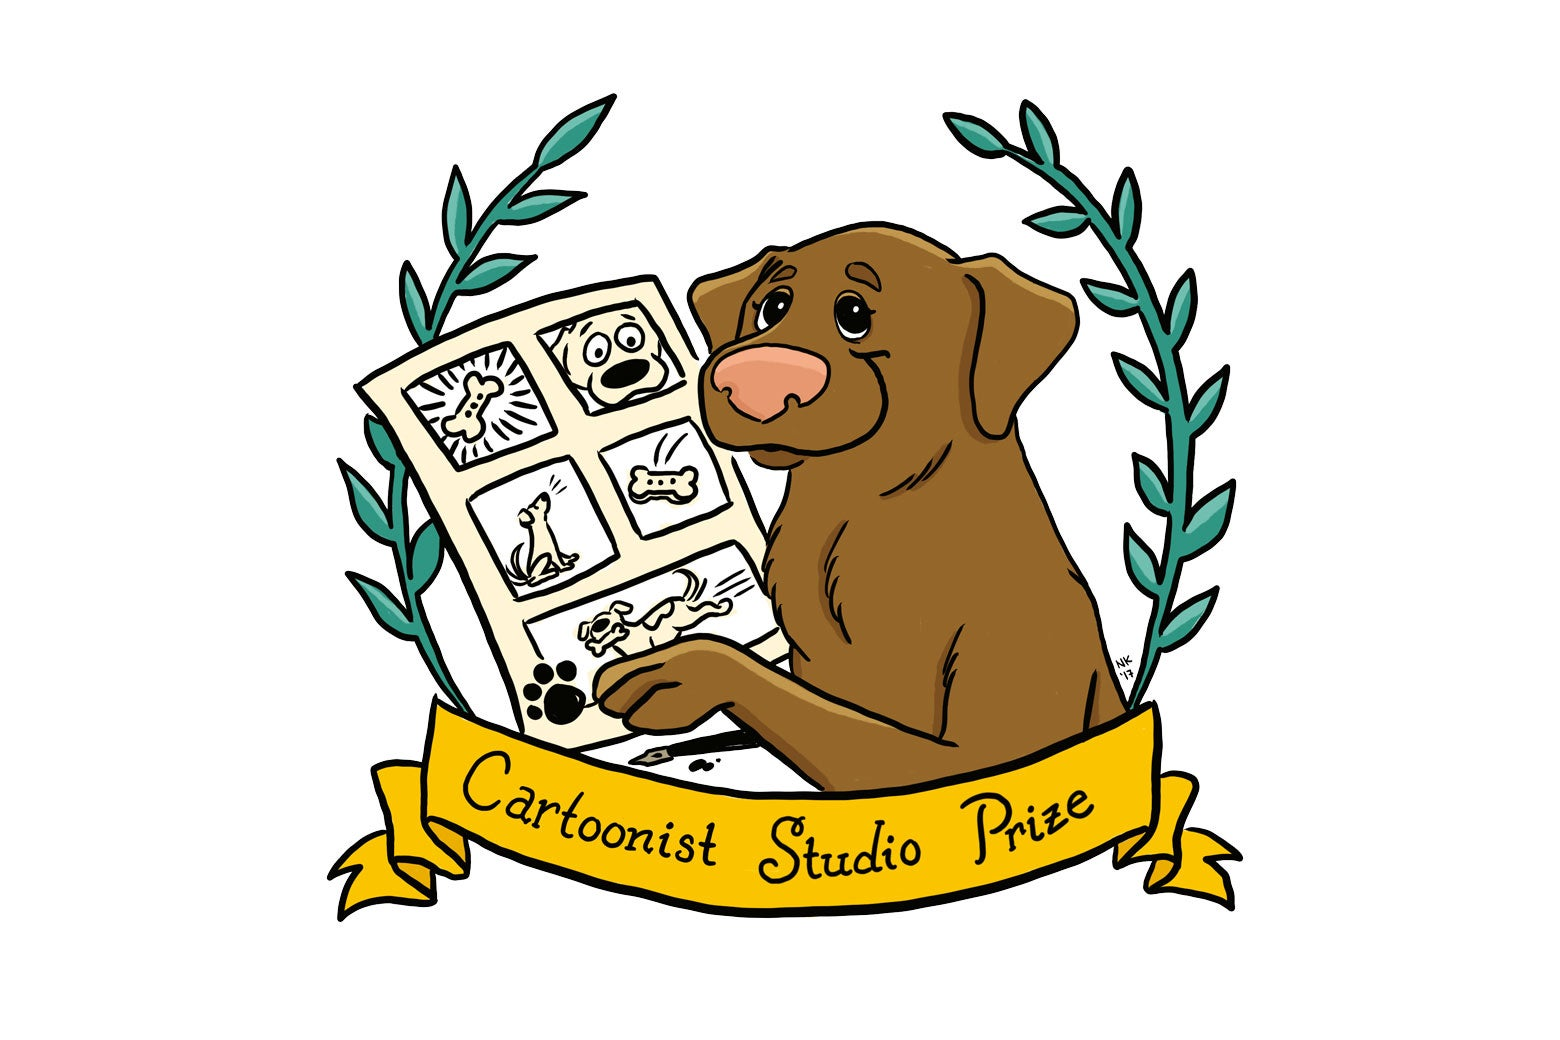 The logo for the Cartoonist Studio Prize.